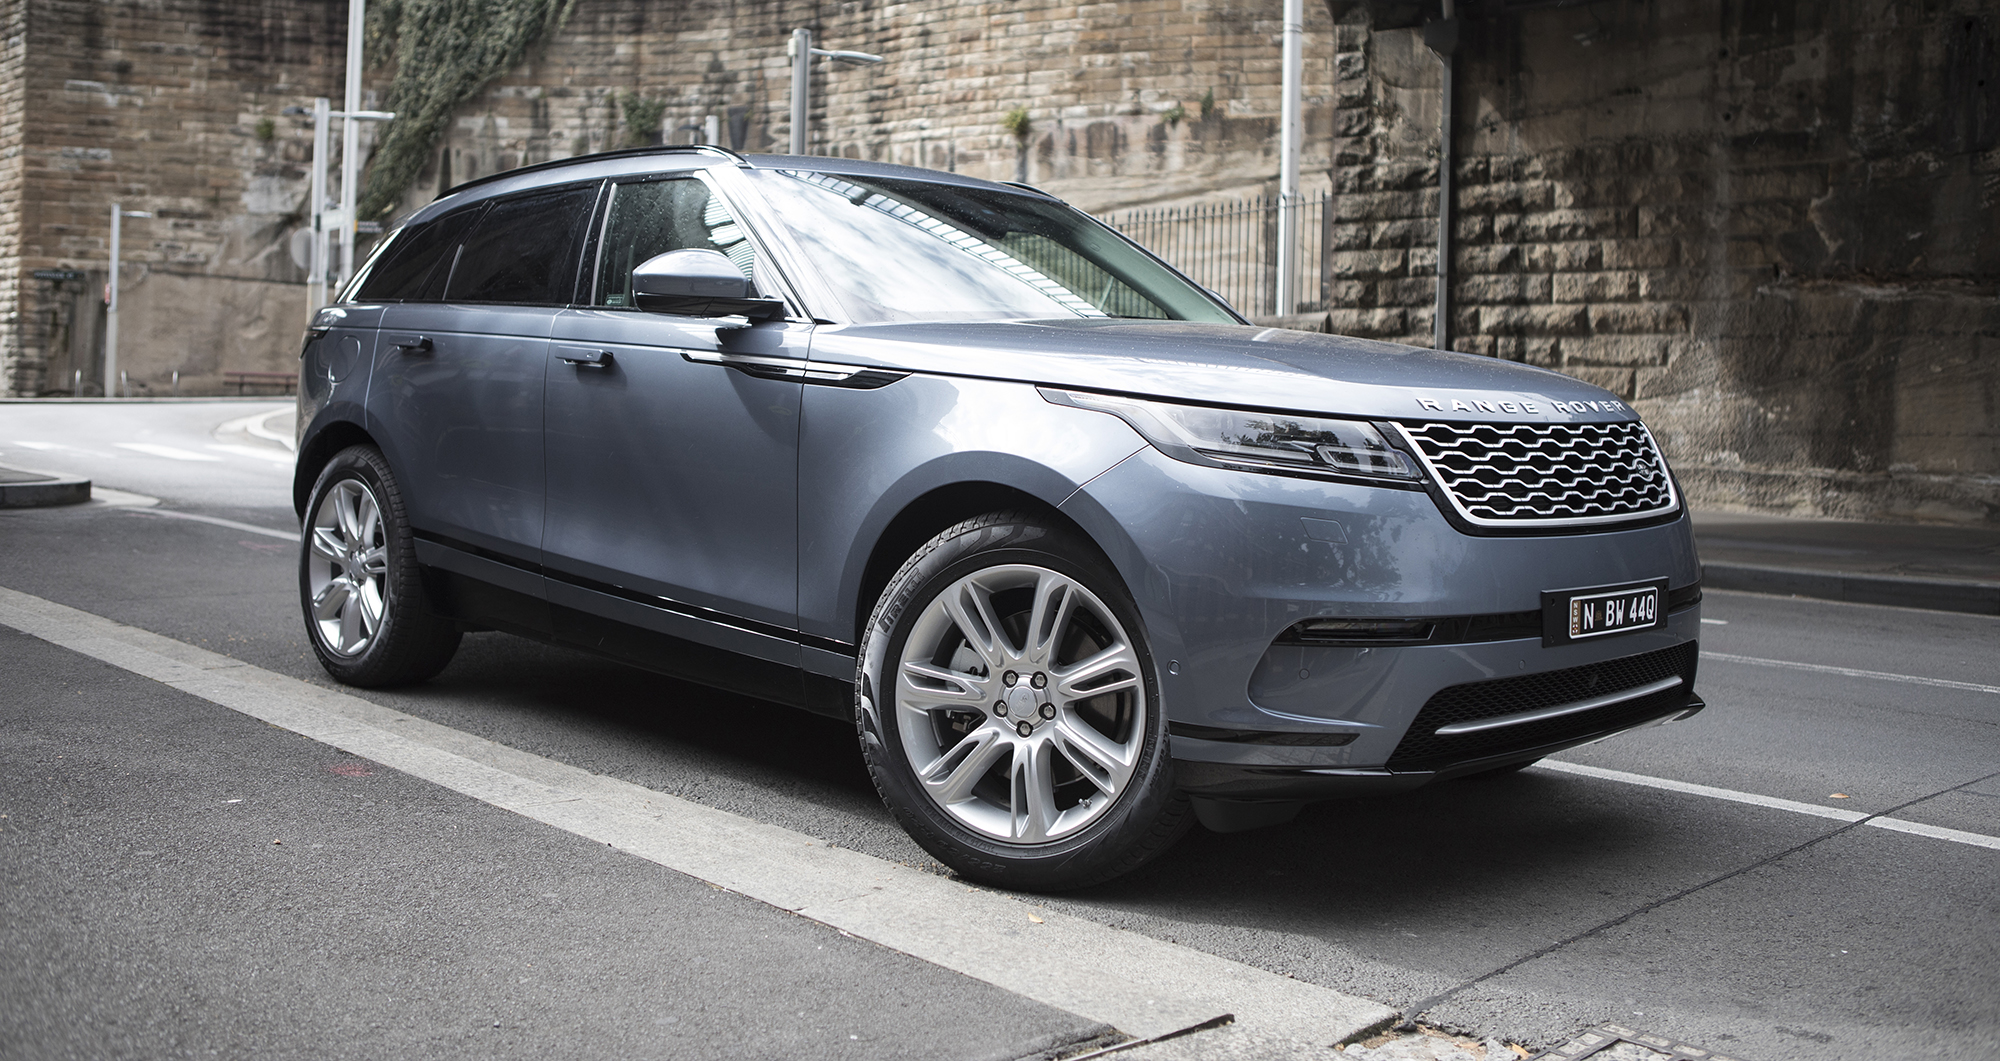 2018 range rover velar se d240 diesel review photos caradvice. Black Bedroom Furniture Sets. Home Design Ideas